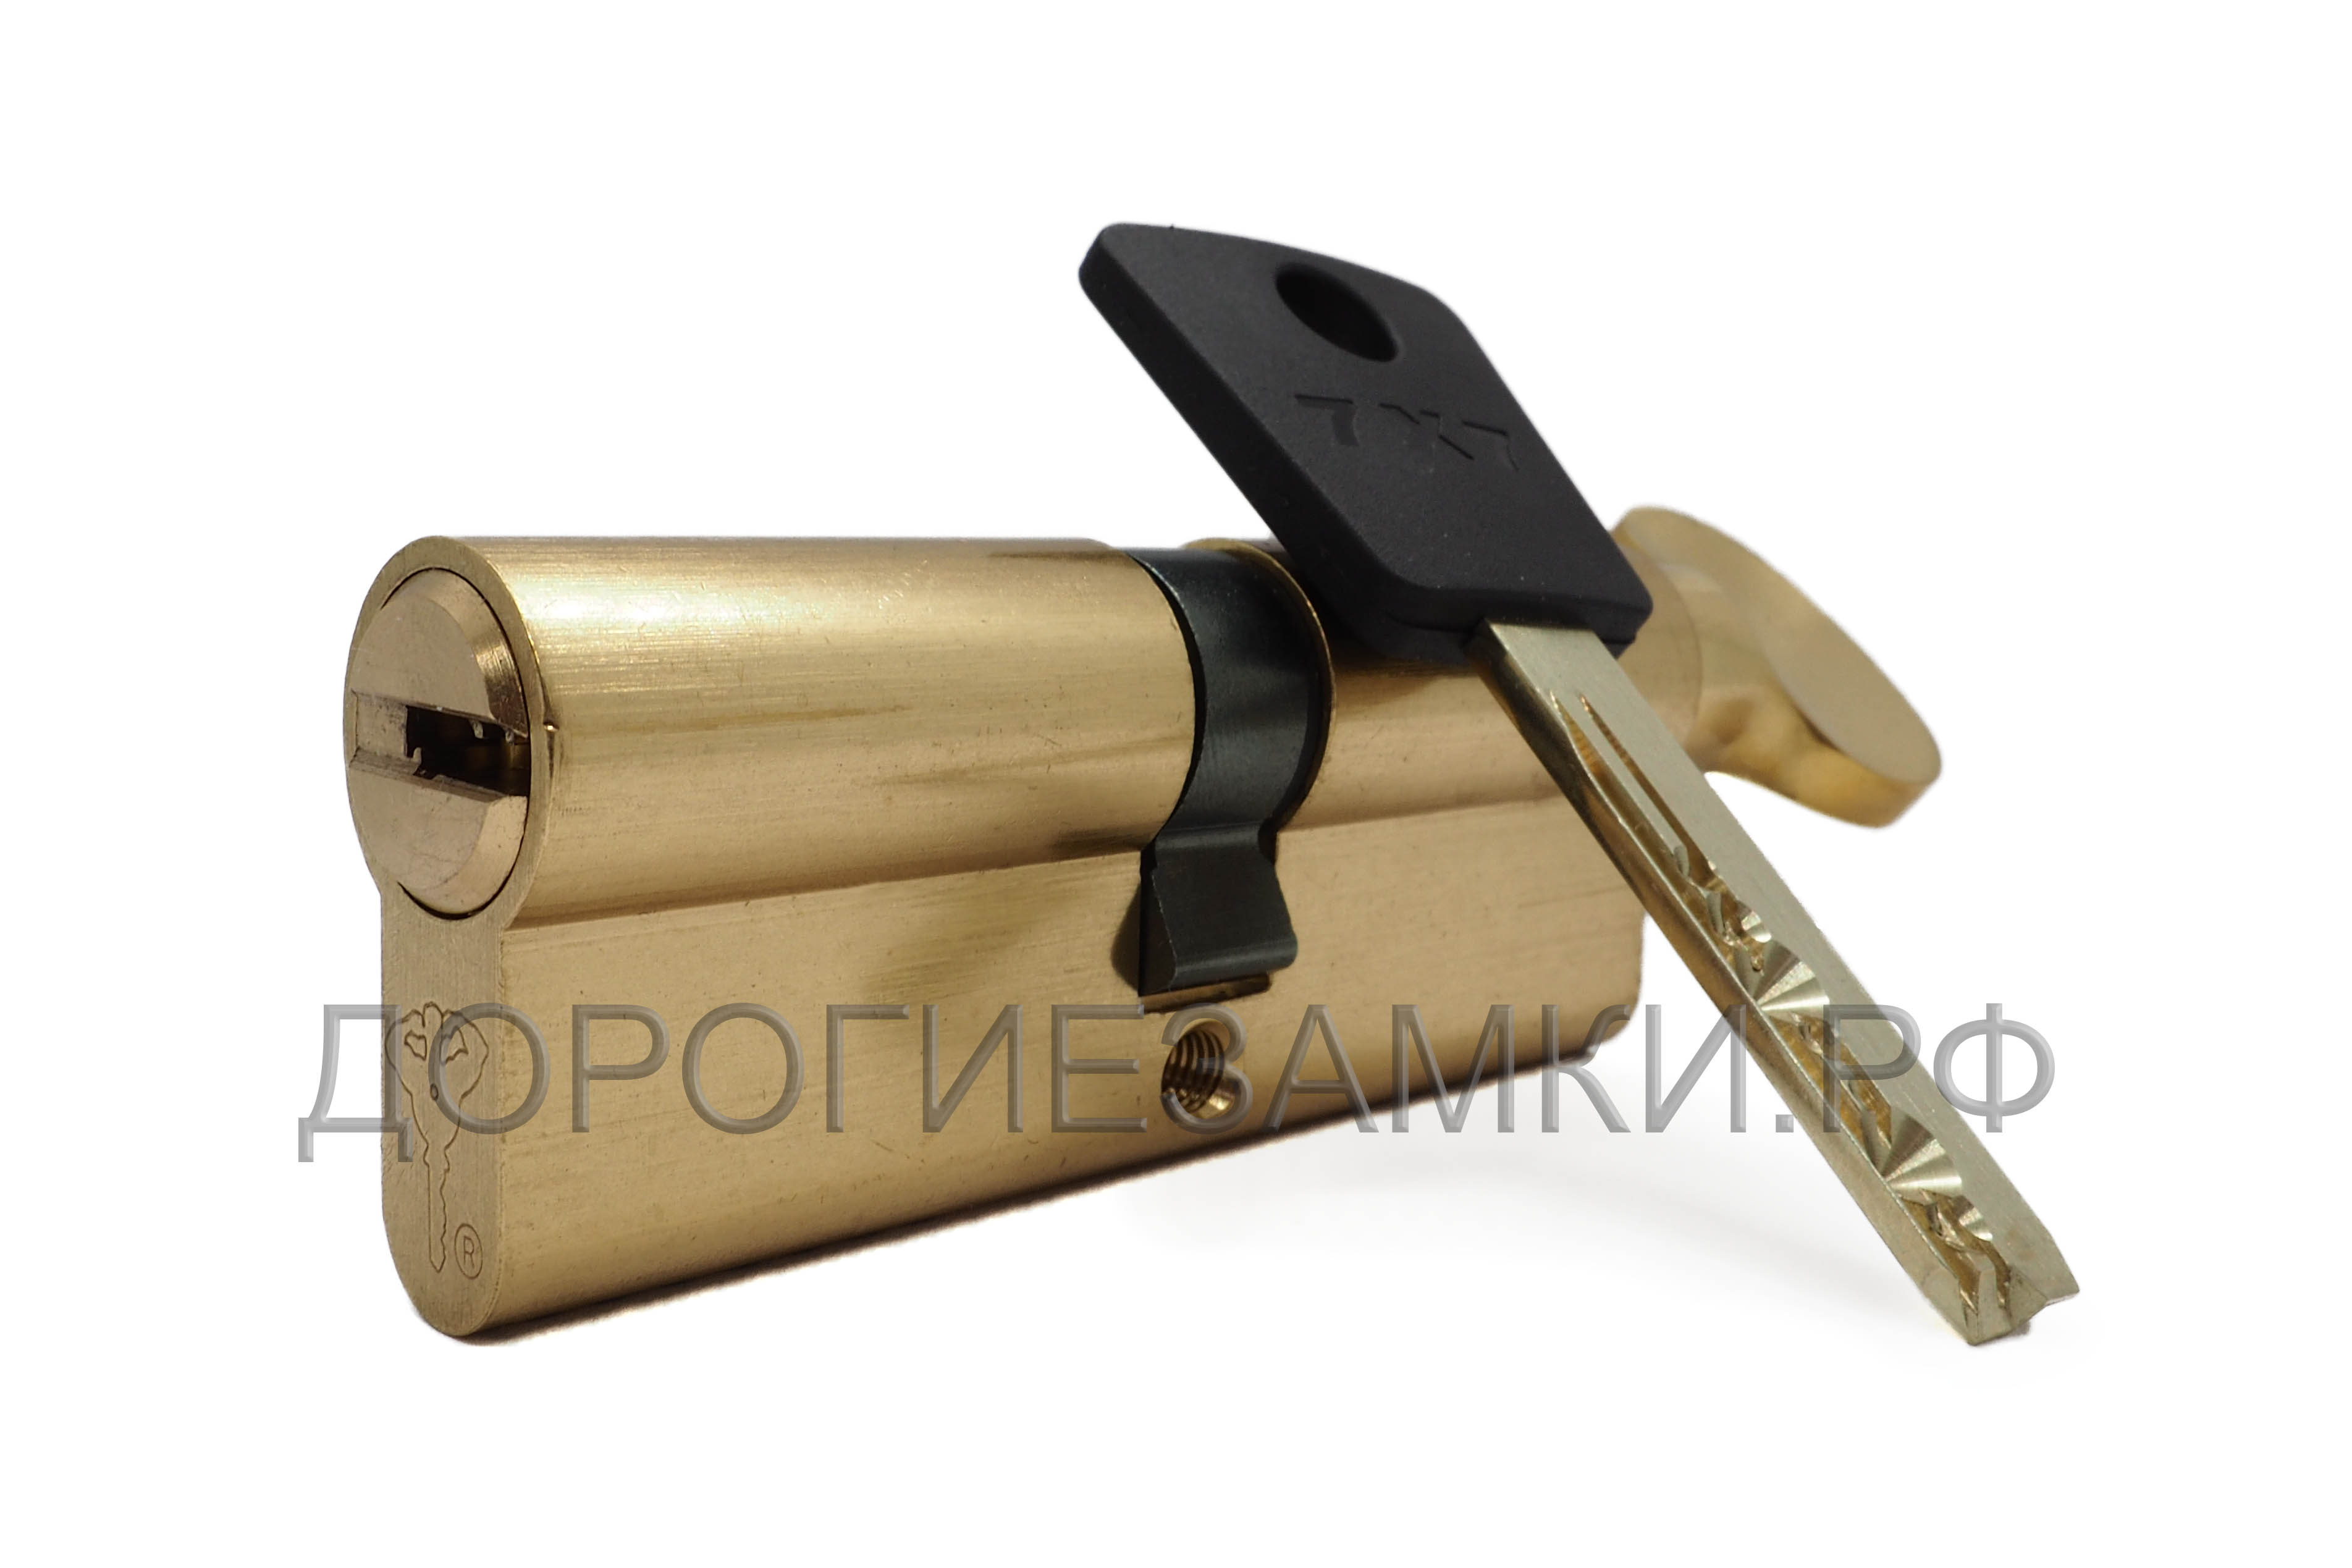 Цилиндр Mul-t-lock 7x7 L90 - Mul-t-locks.ru